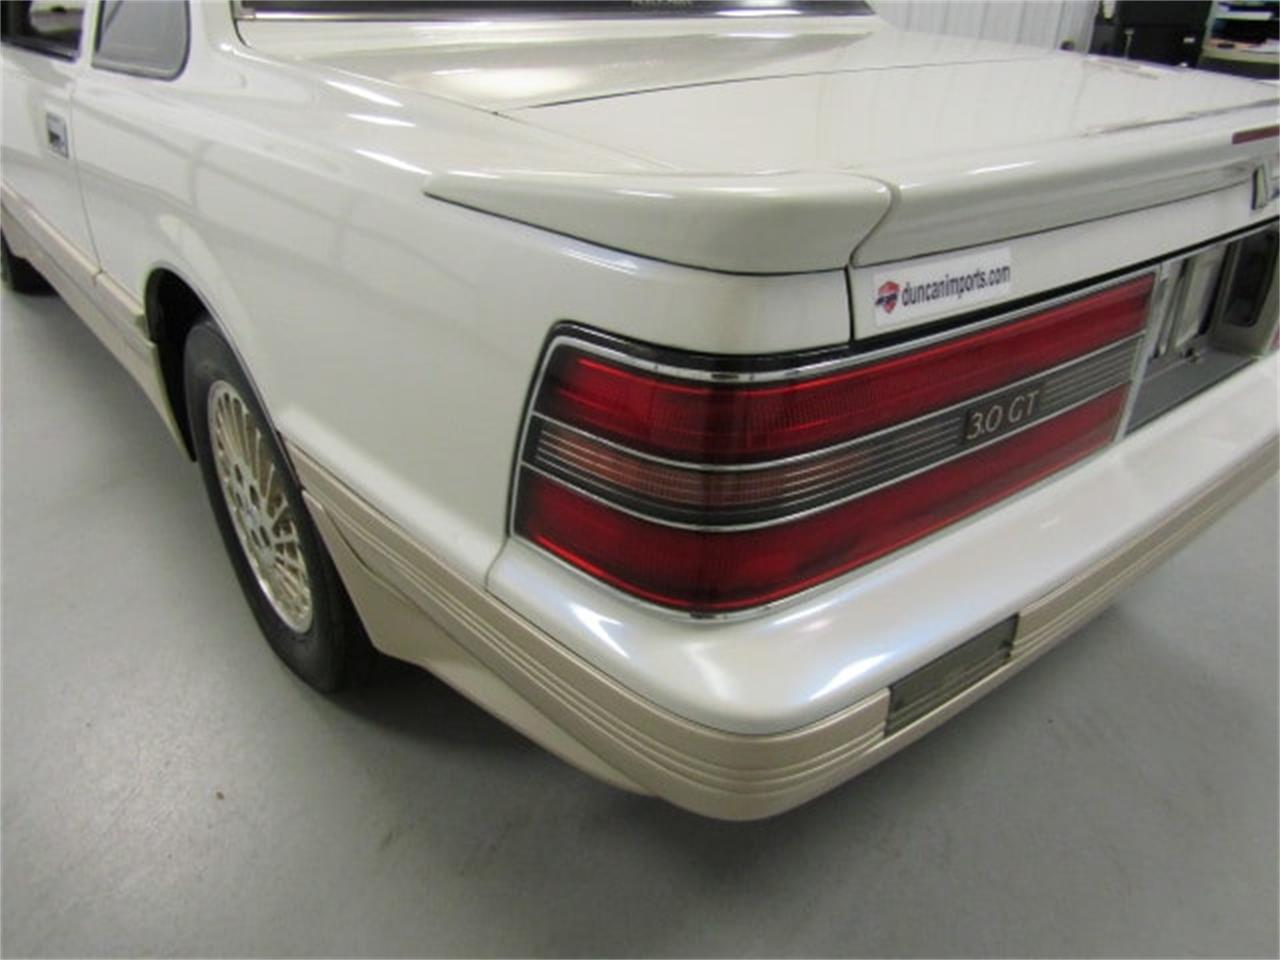 Large Picture of '89 Soarer located in Virginia Offered by Duncan Imports & Classic Cars - LN7J